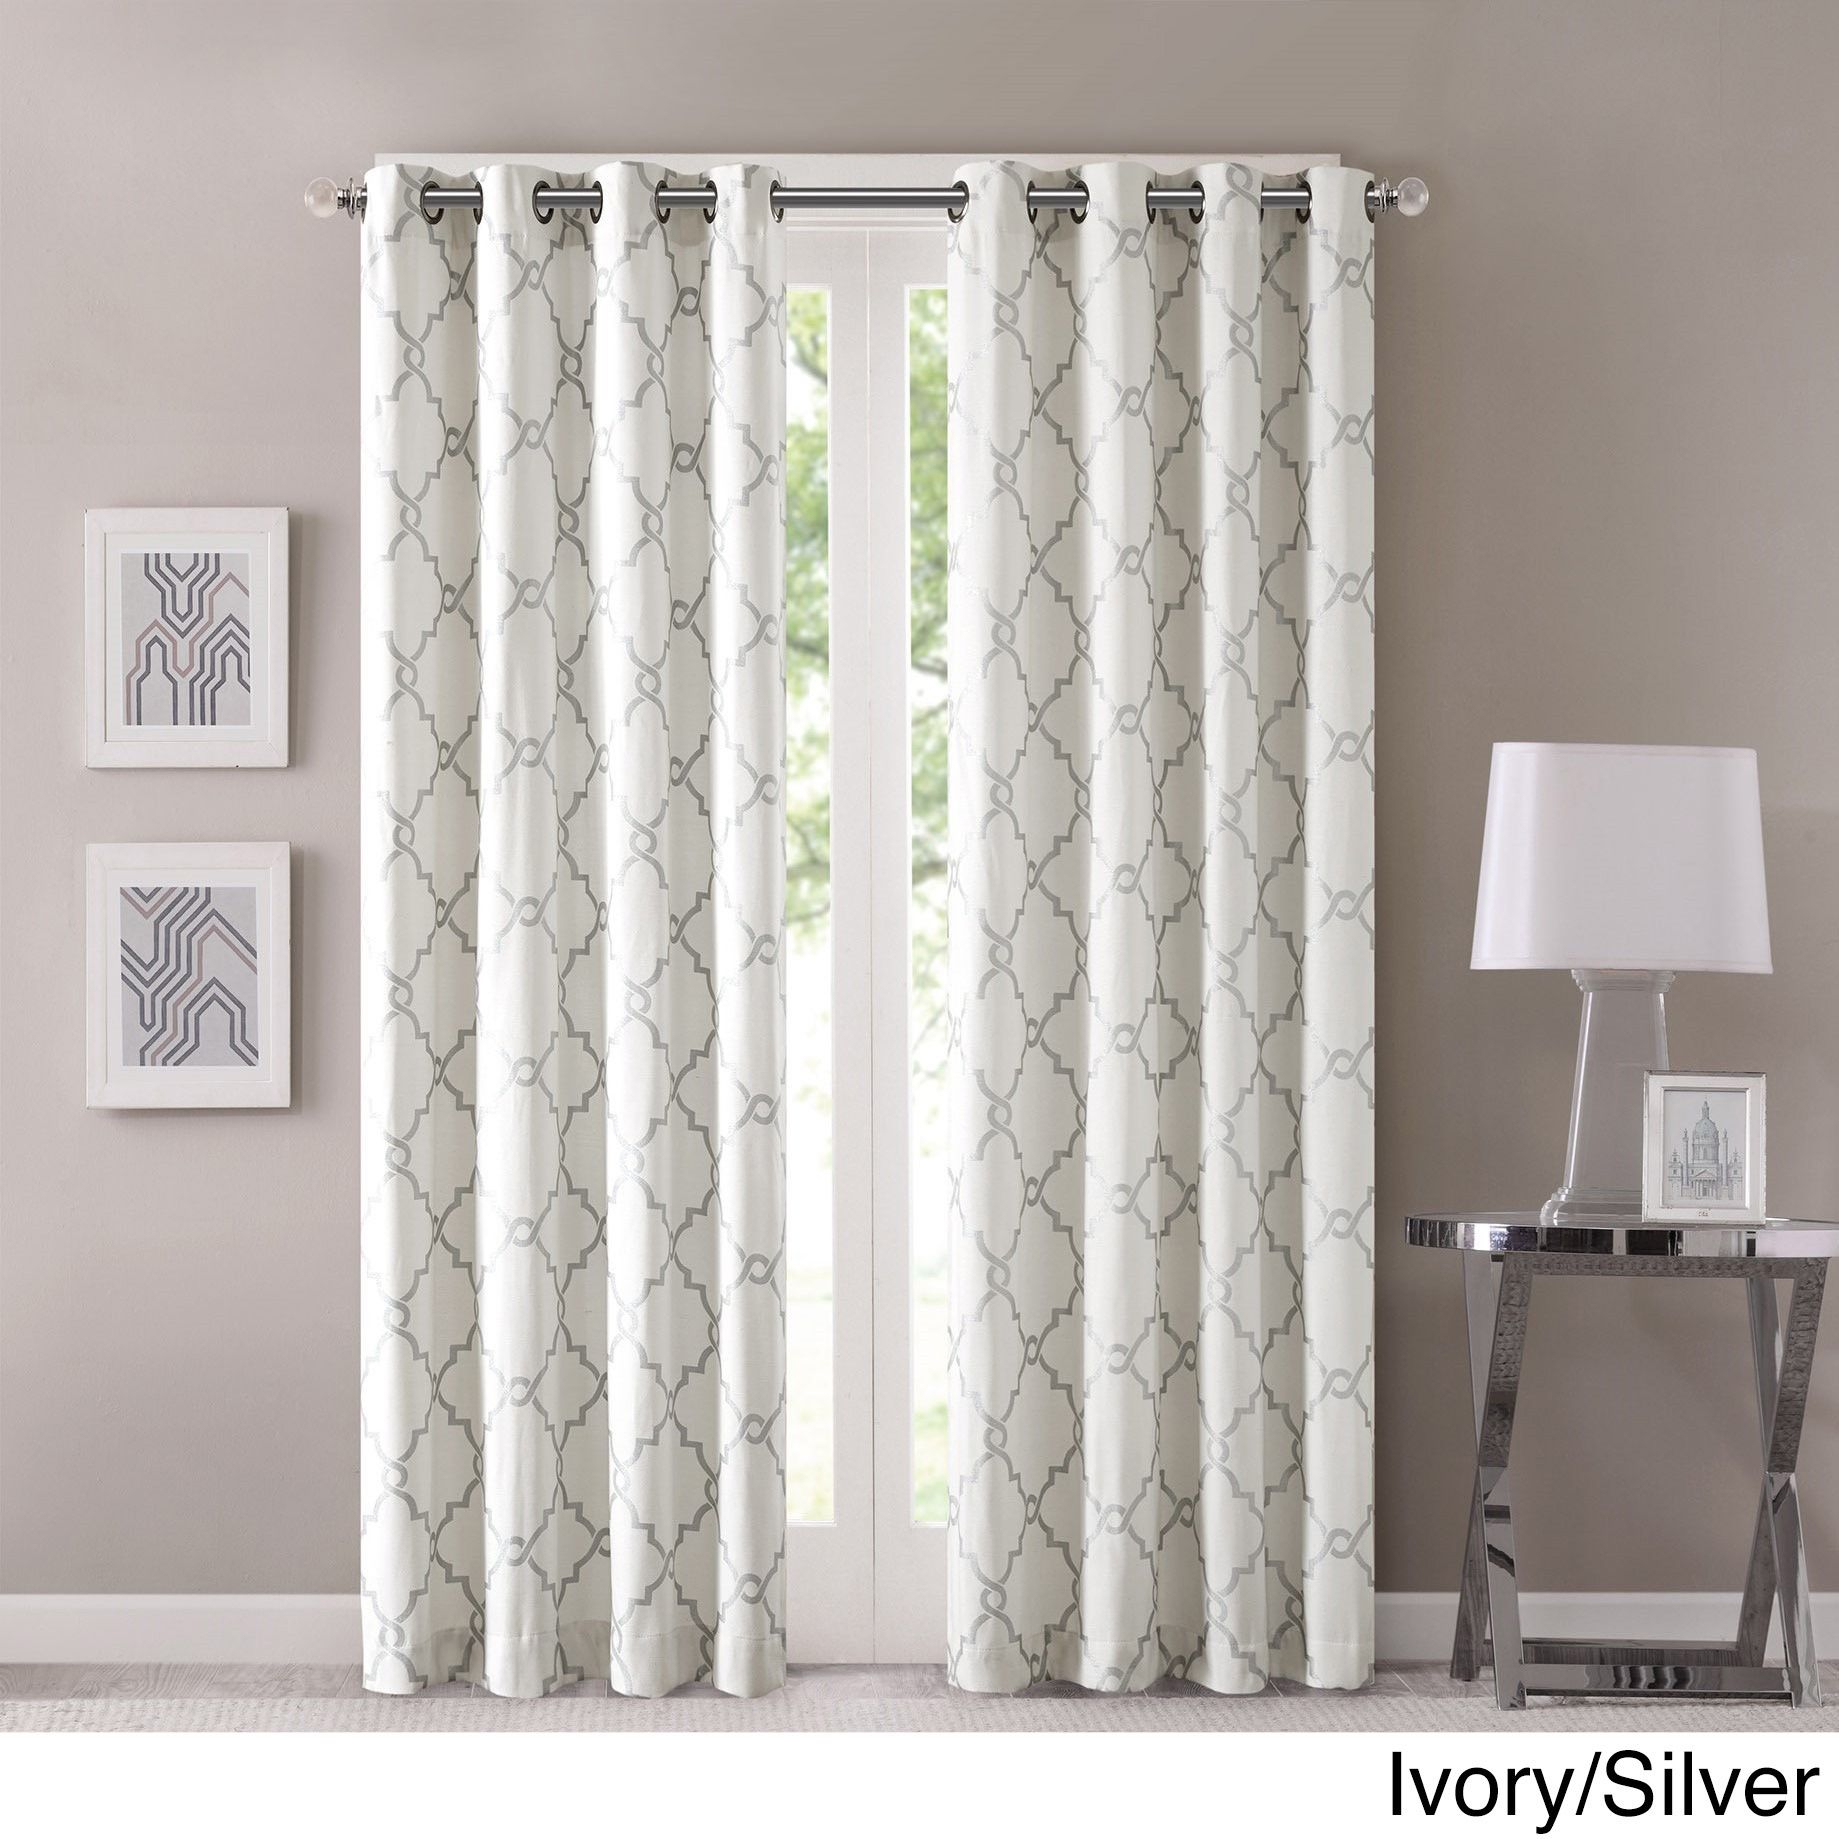 Madison Park Westmont Curtain Panel (50x63 Ivory/silver Intended For Luxury Collection Cranston Sheer Curtain Panel Pairs (View 11 of 20)